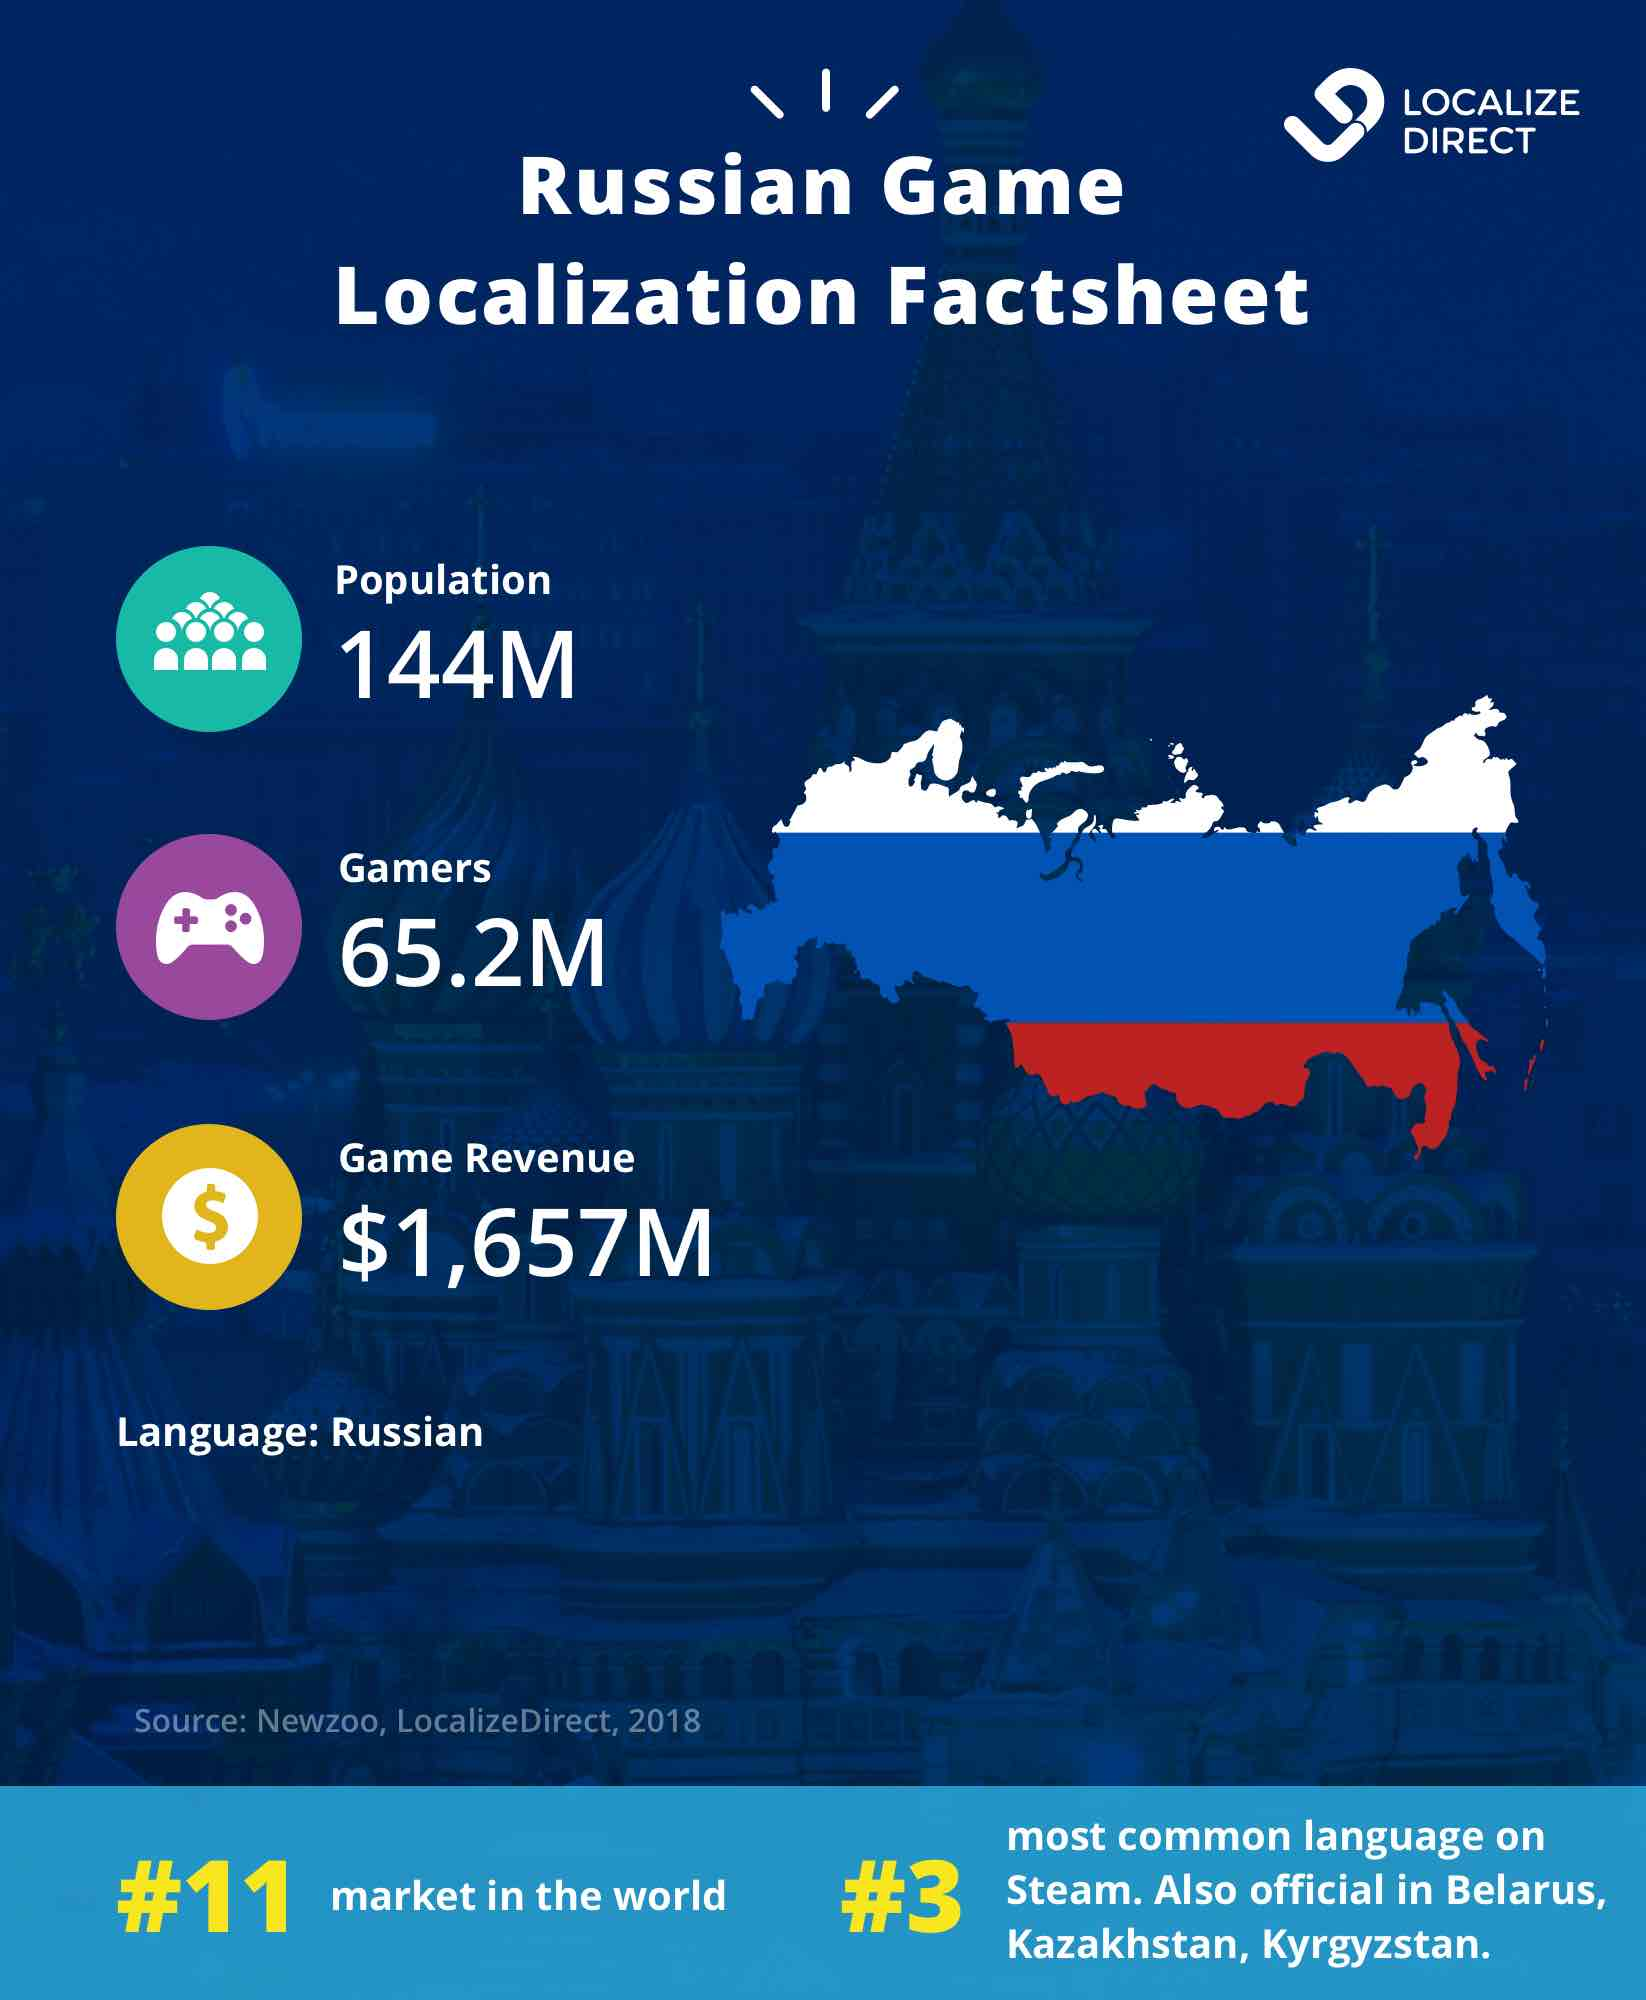 Russia's games market data: population, language, gamers, revenue 2018